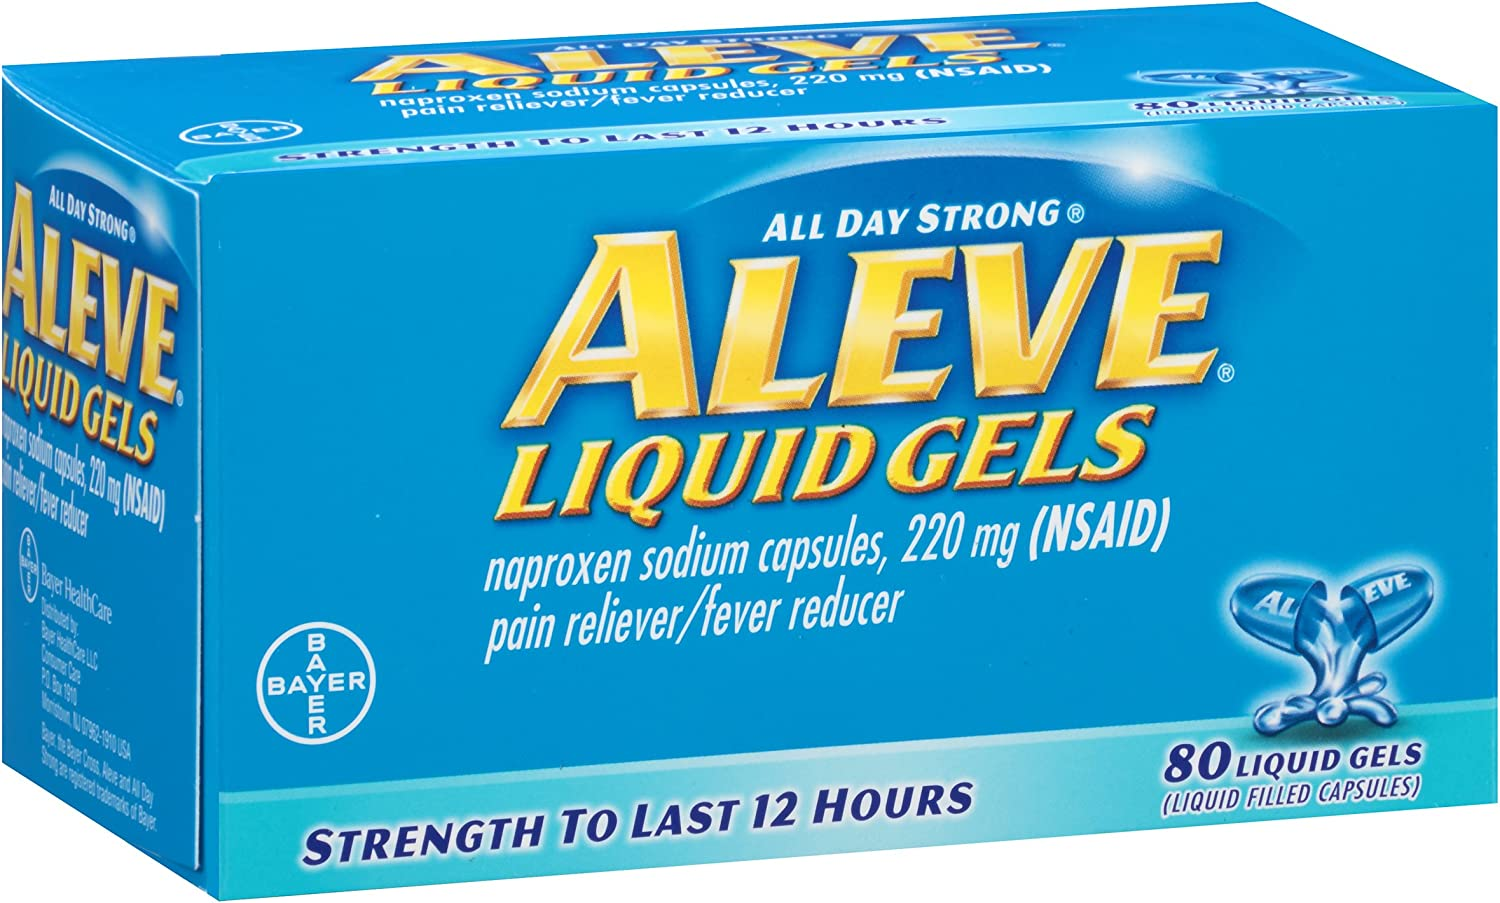 Aleve Liquid Gels with Naproxen Sodium, 220mg (NSAID) Pain Reliever/Fever Reducer, 80 Liquid gels: Health & Personal Care